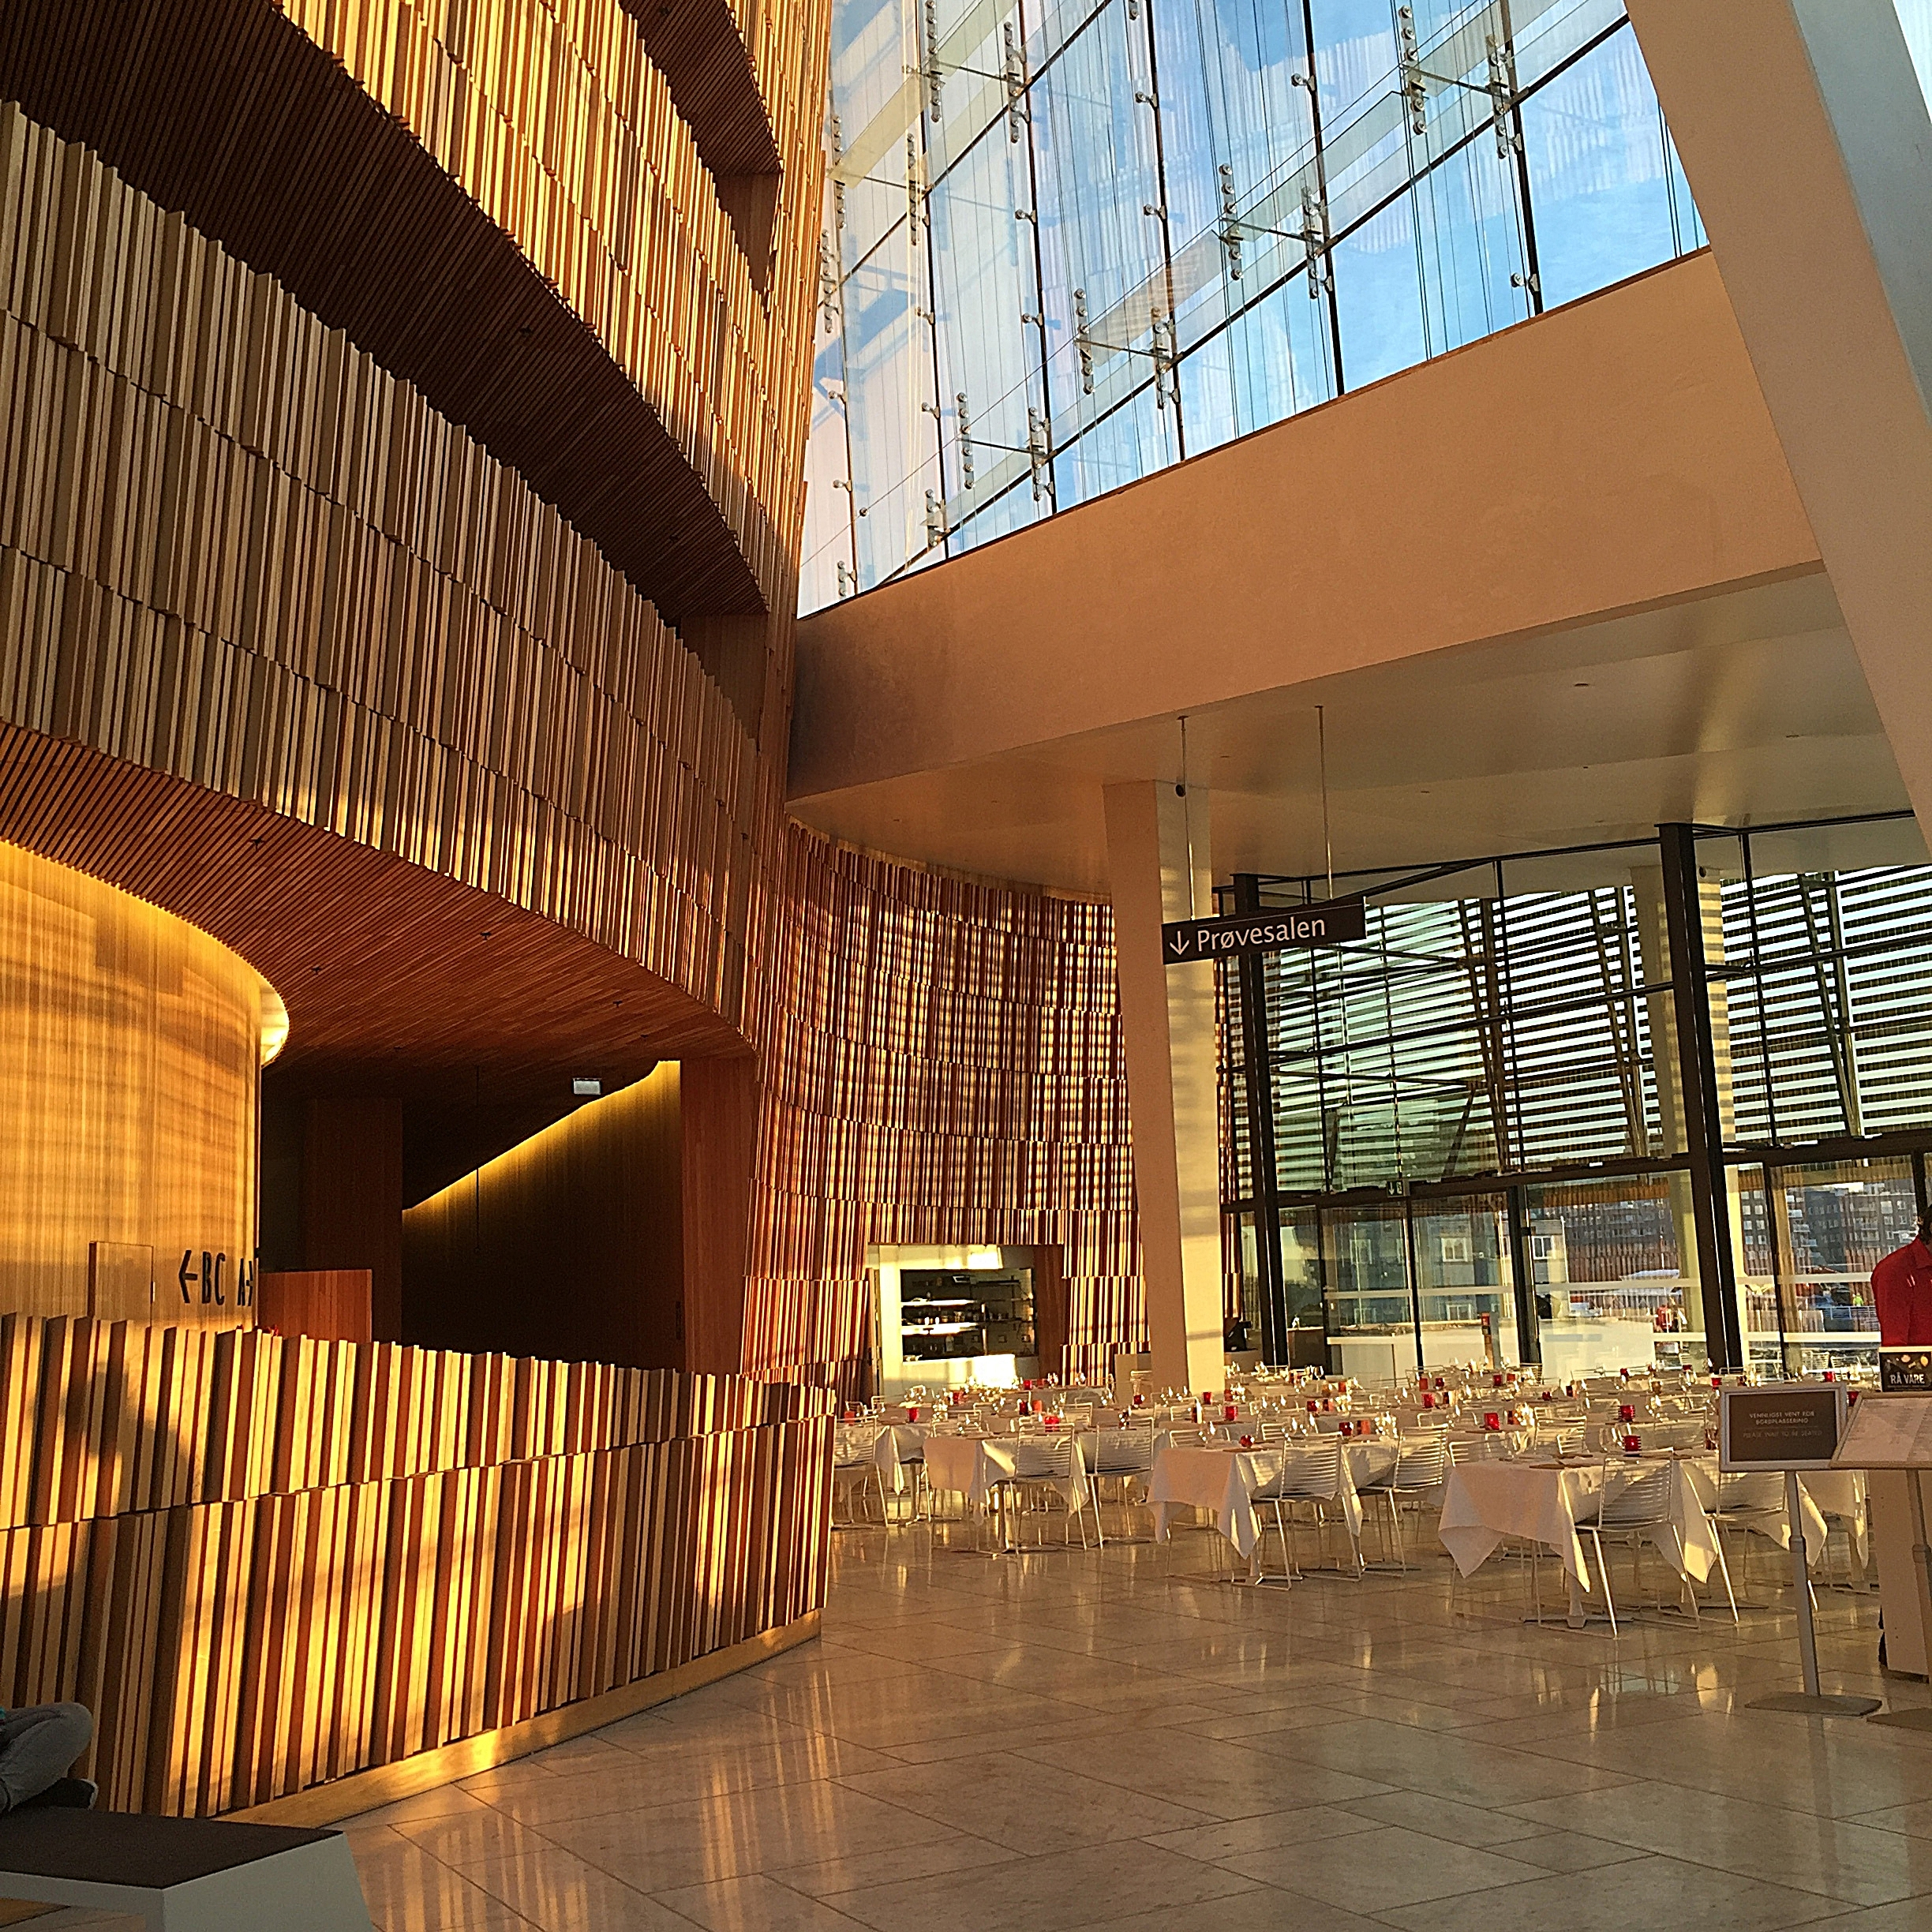 Interior of the Oslo Opera House at sunset